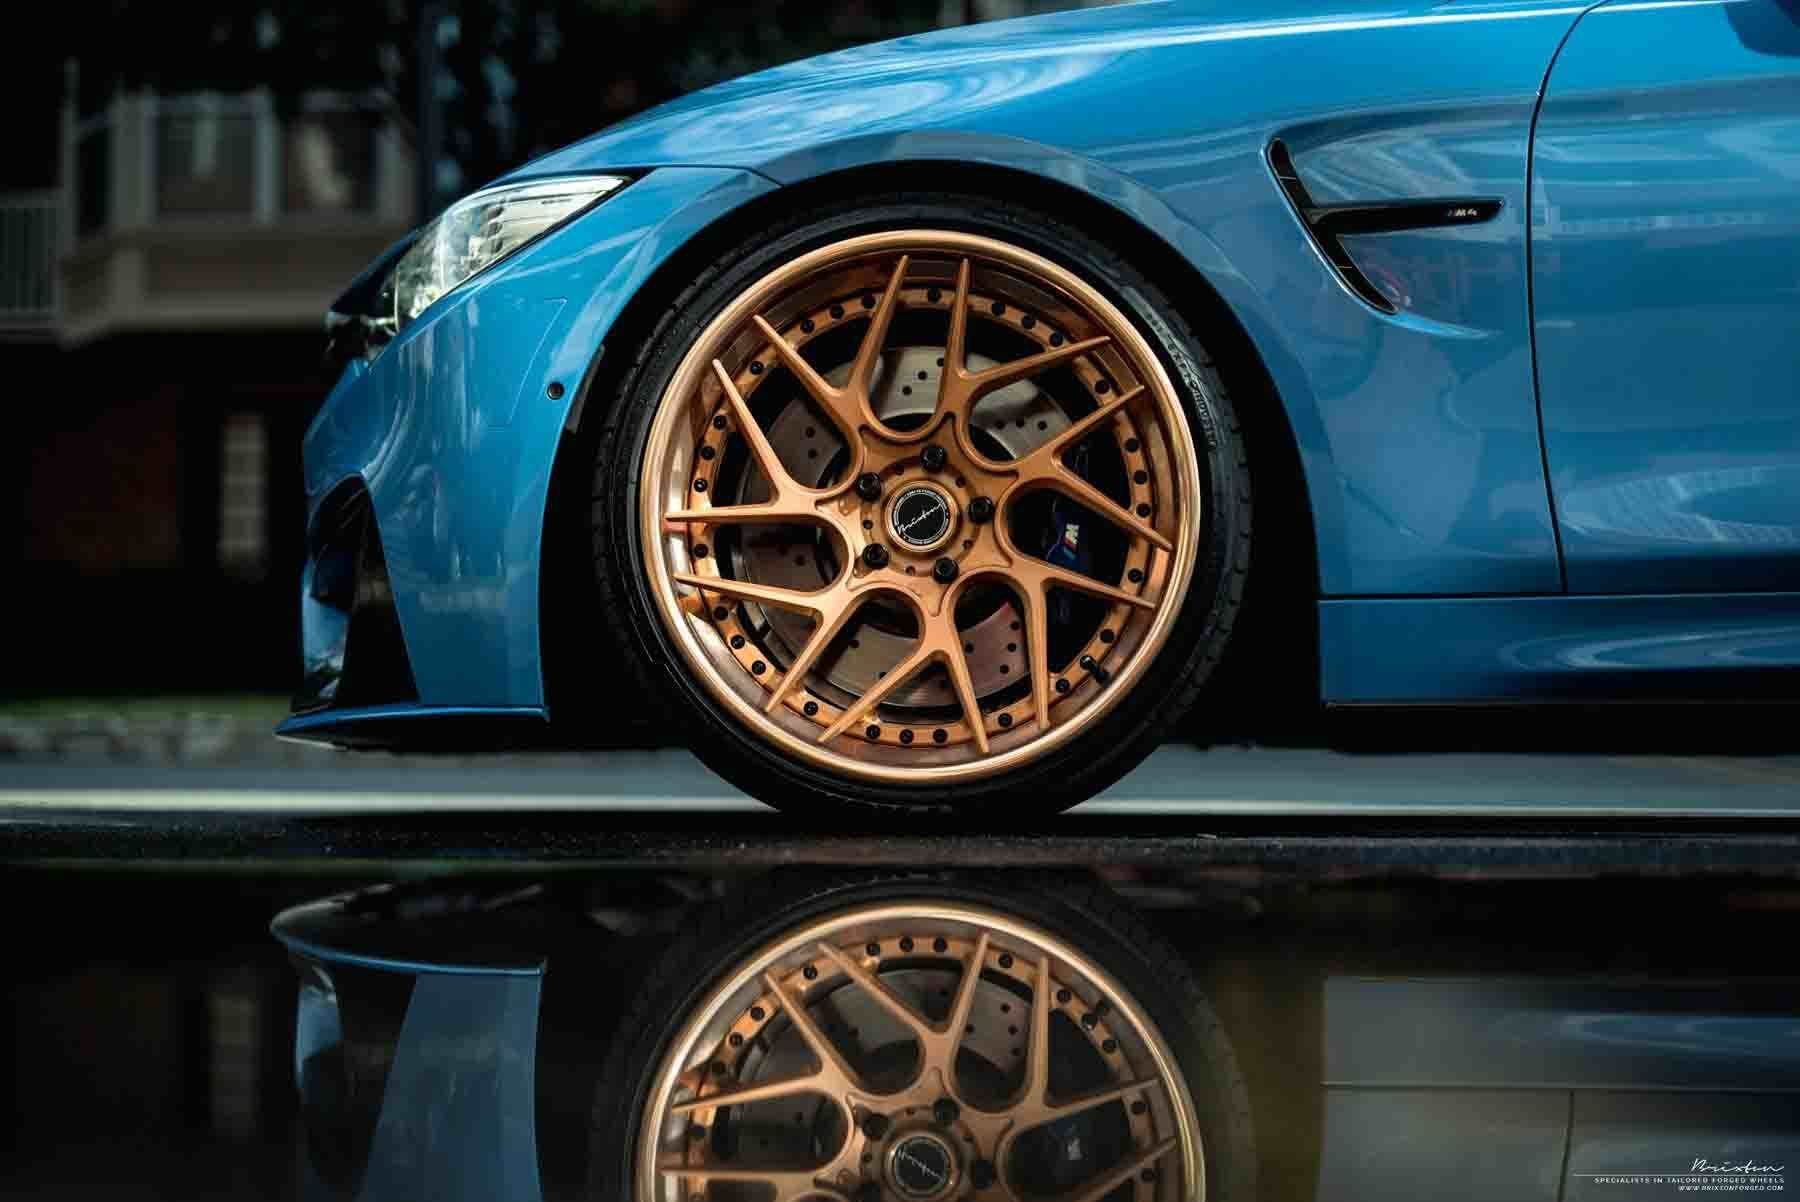 images-products-1-2548-232974836-yas-marina-blue-bmw-m4-f82-brixton-forged-cm7-targa-series-forged-concave-wheels-rose-gold-5-180.jpg